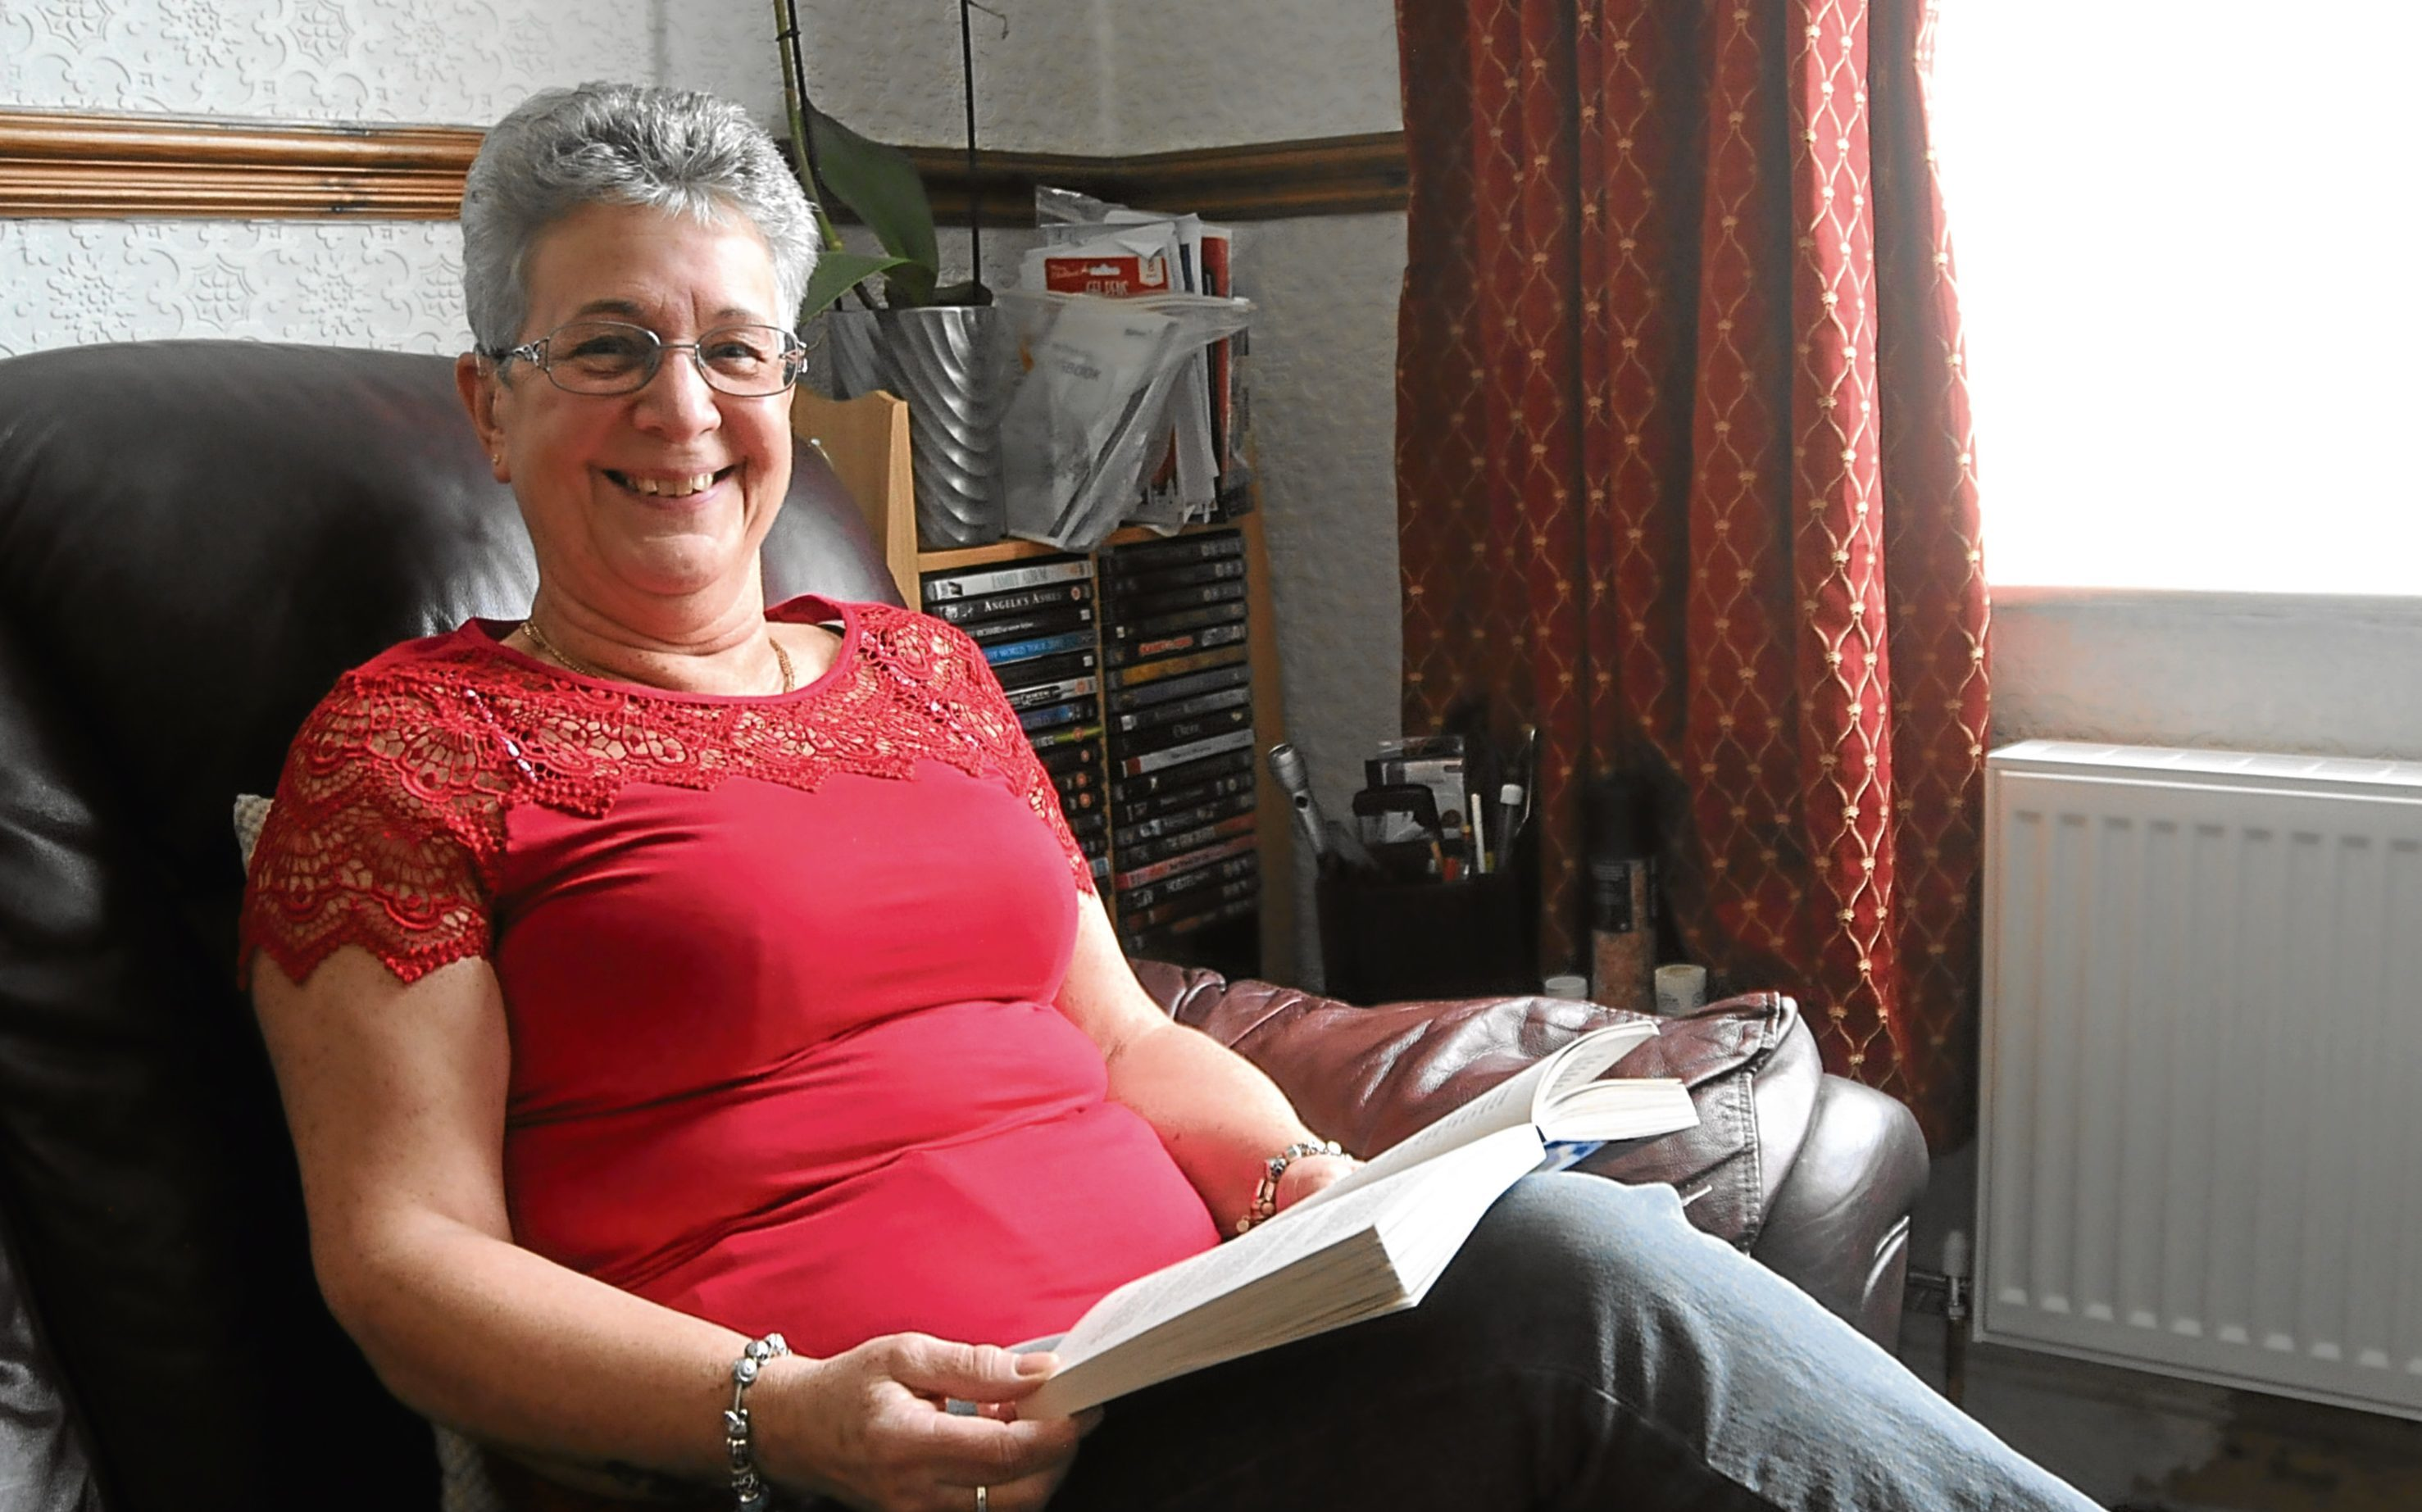 Wendy and her son-in-law got their £50 rebates, but they shouldn't have needed to ask for them